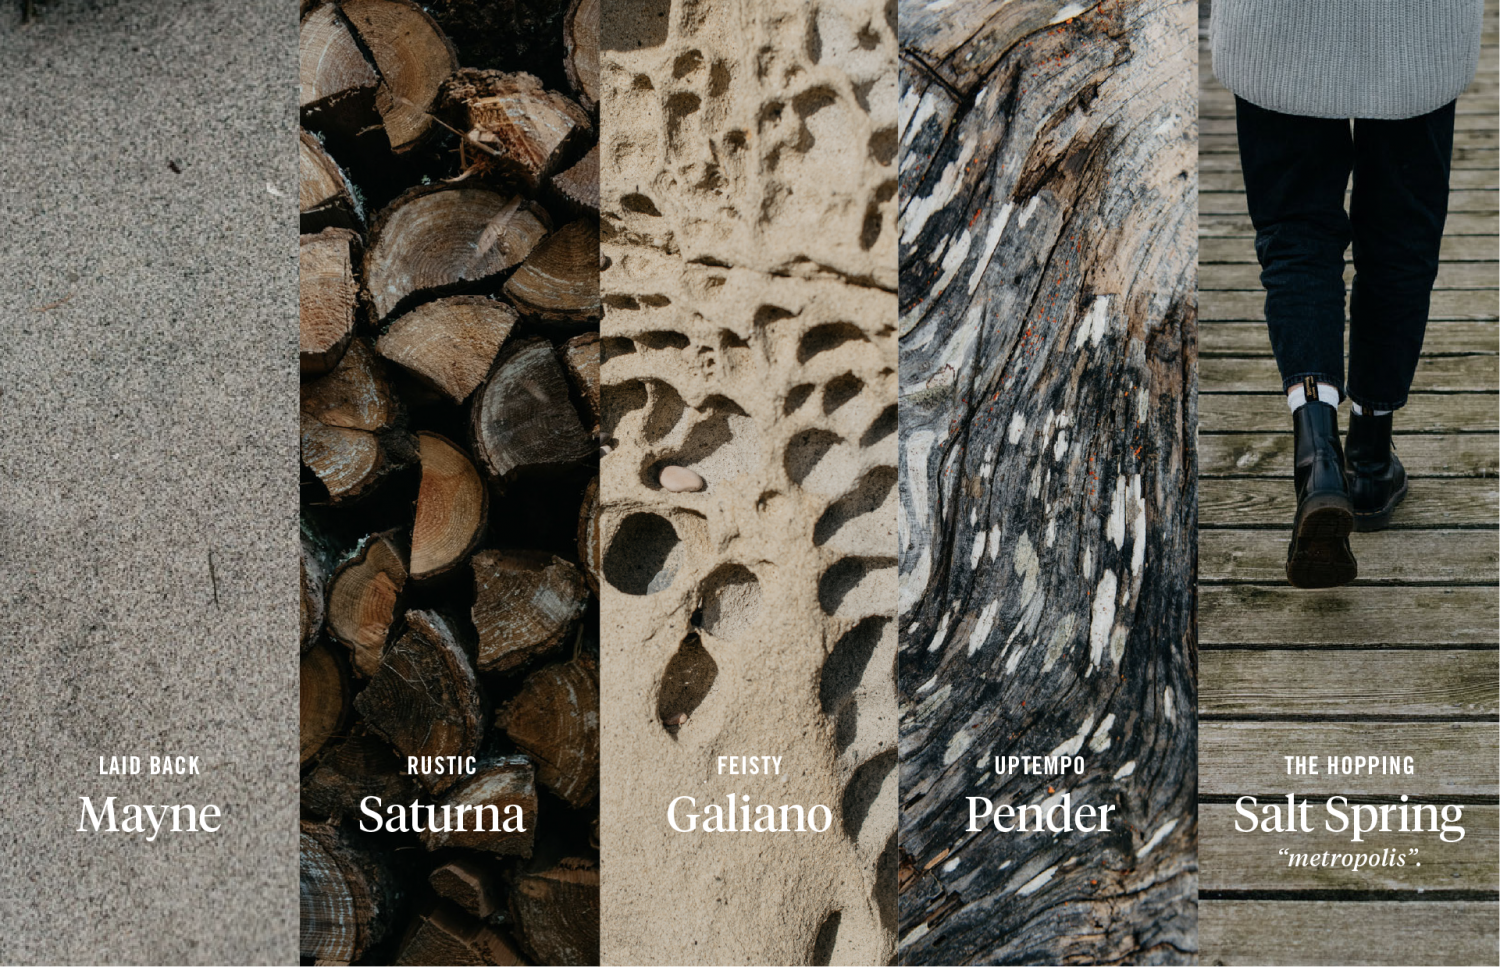 """Five textures representing each island in the Southern Gulf Islands - Mayne (laid back), Saturna (rustic), Galiano (feisty), Pender (uptempo), and Salt Spring (the hopping """"metropolis"""")"""